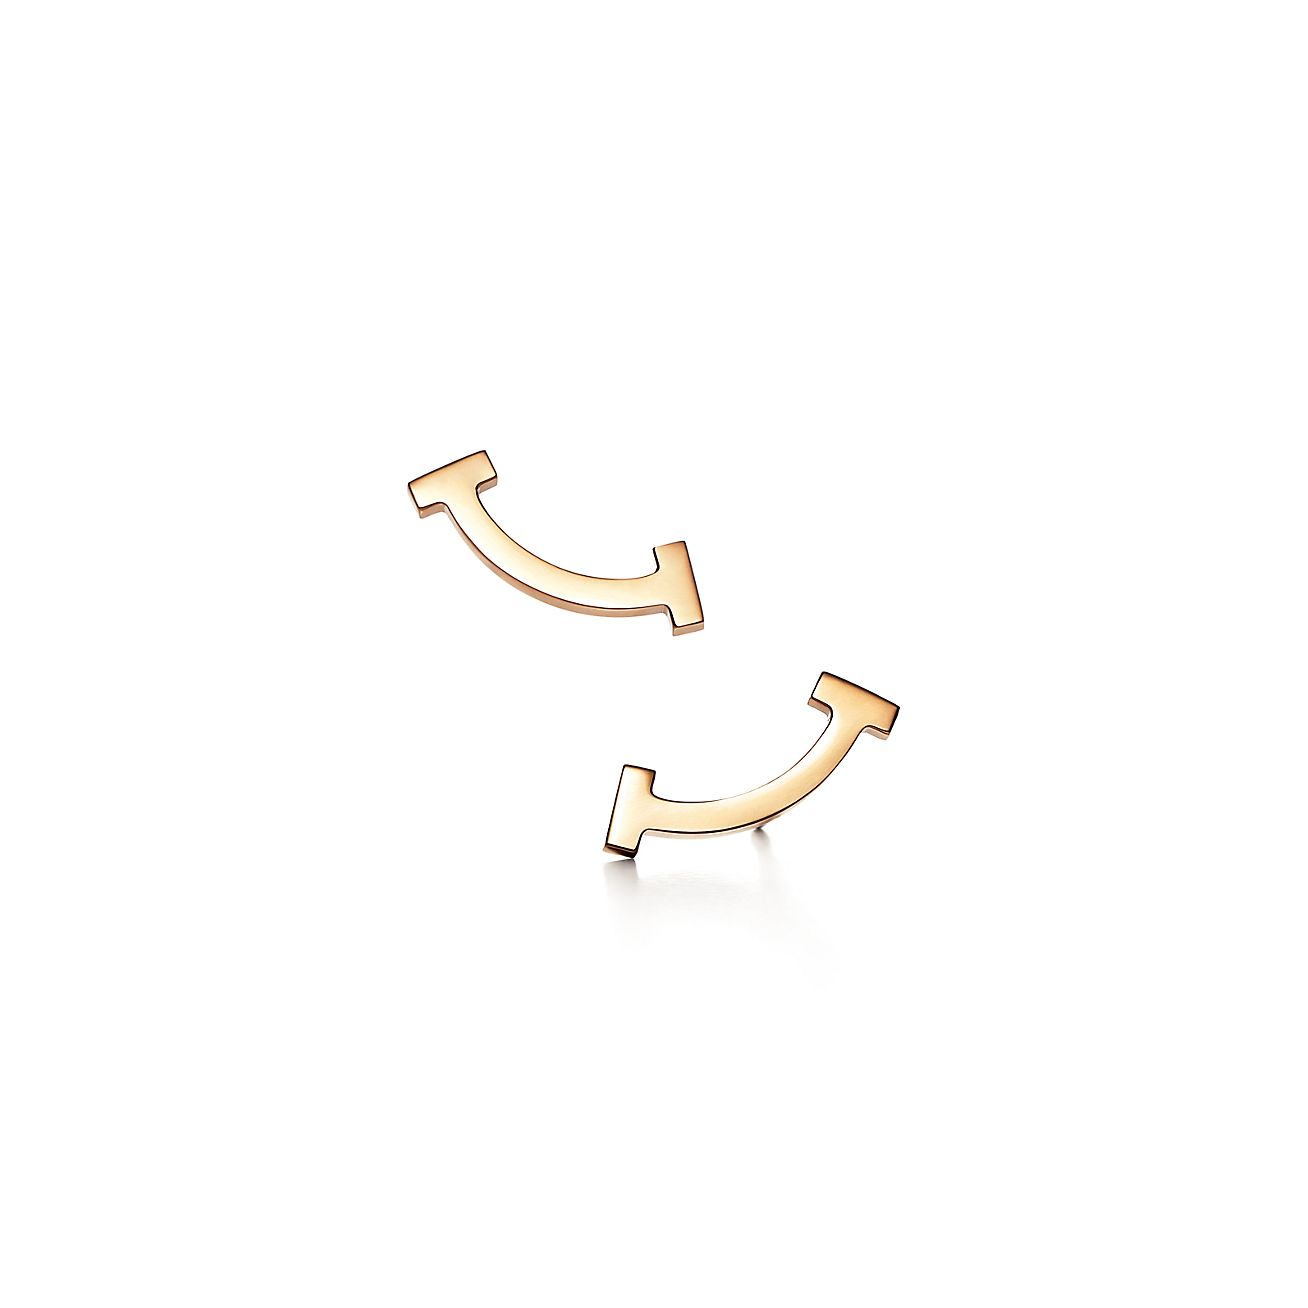 Tiffany T smile earrings in 18k gold with diamonds Tiffany & Co.